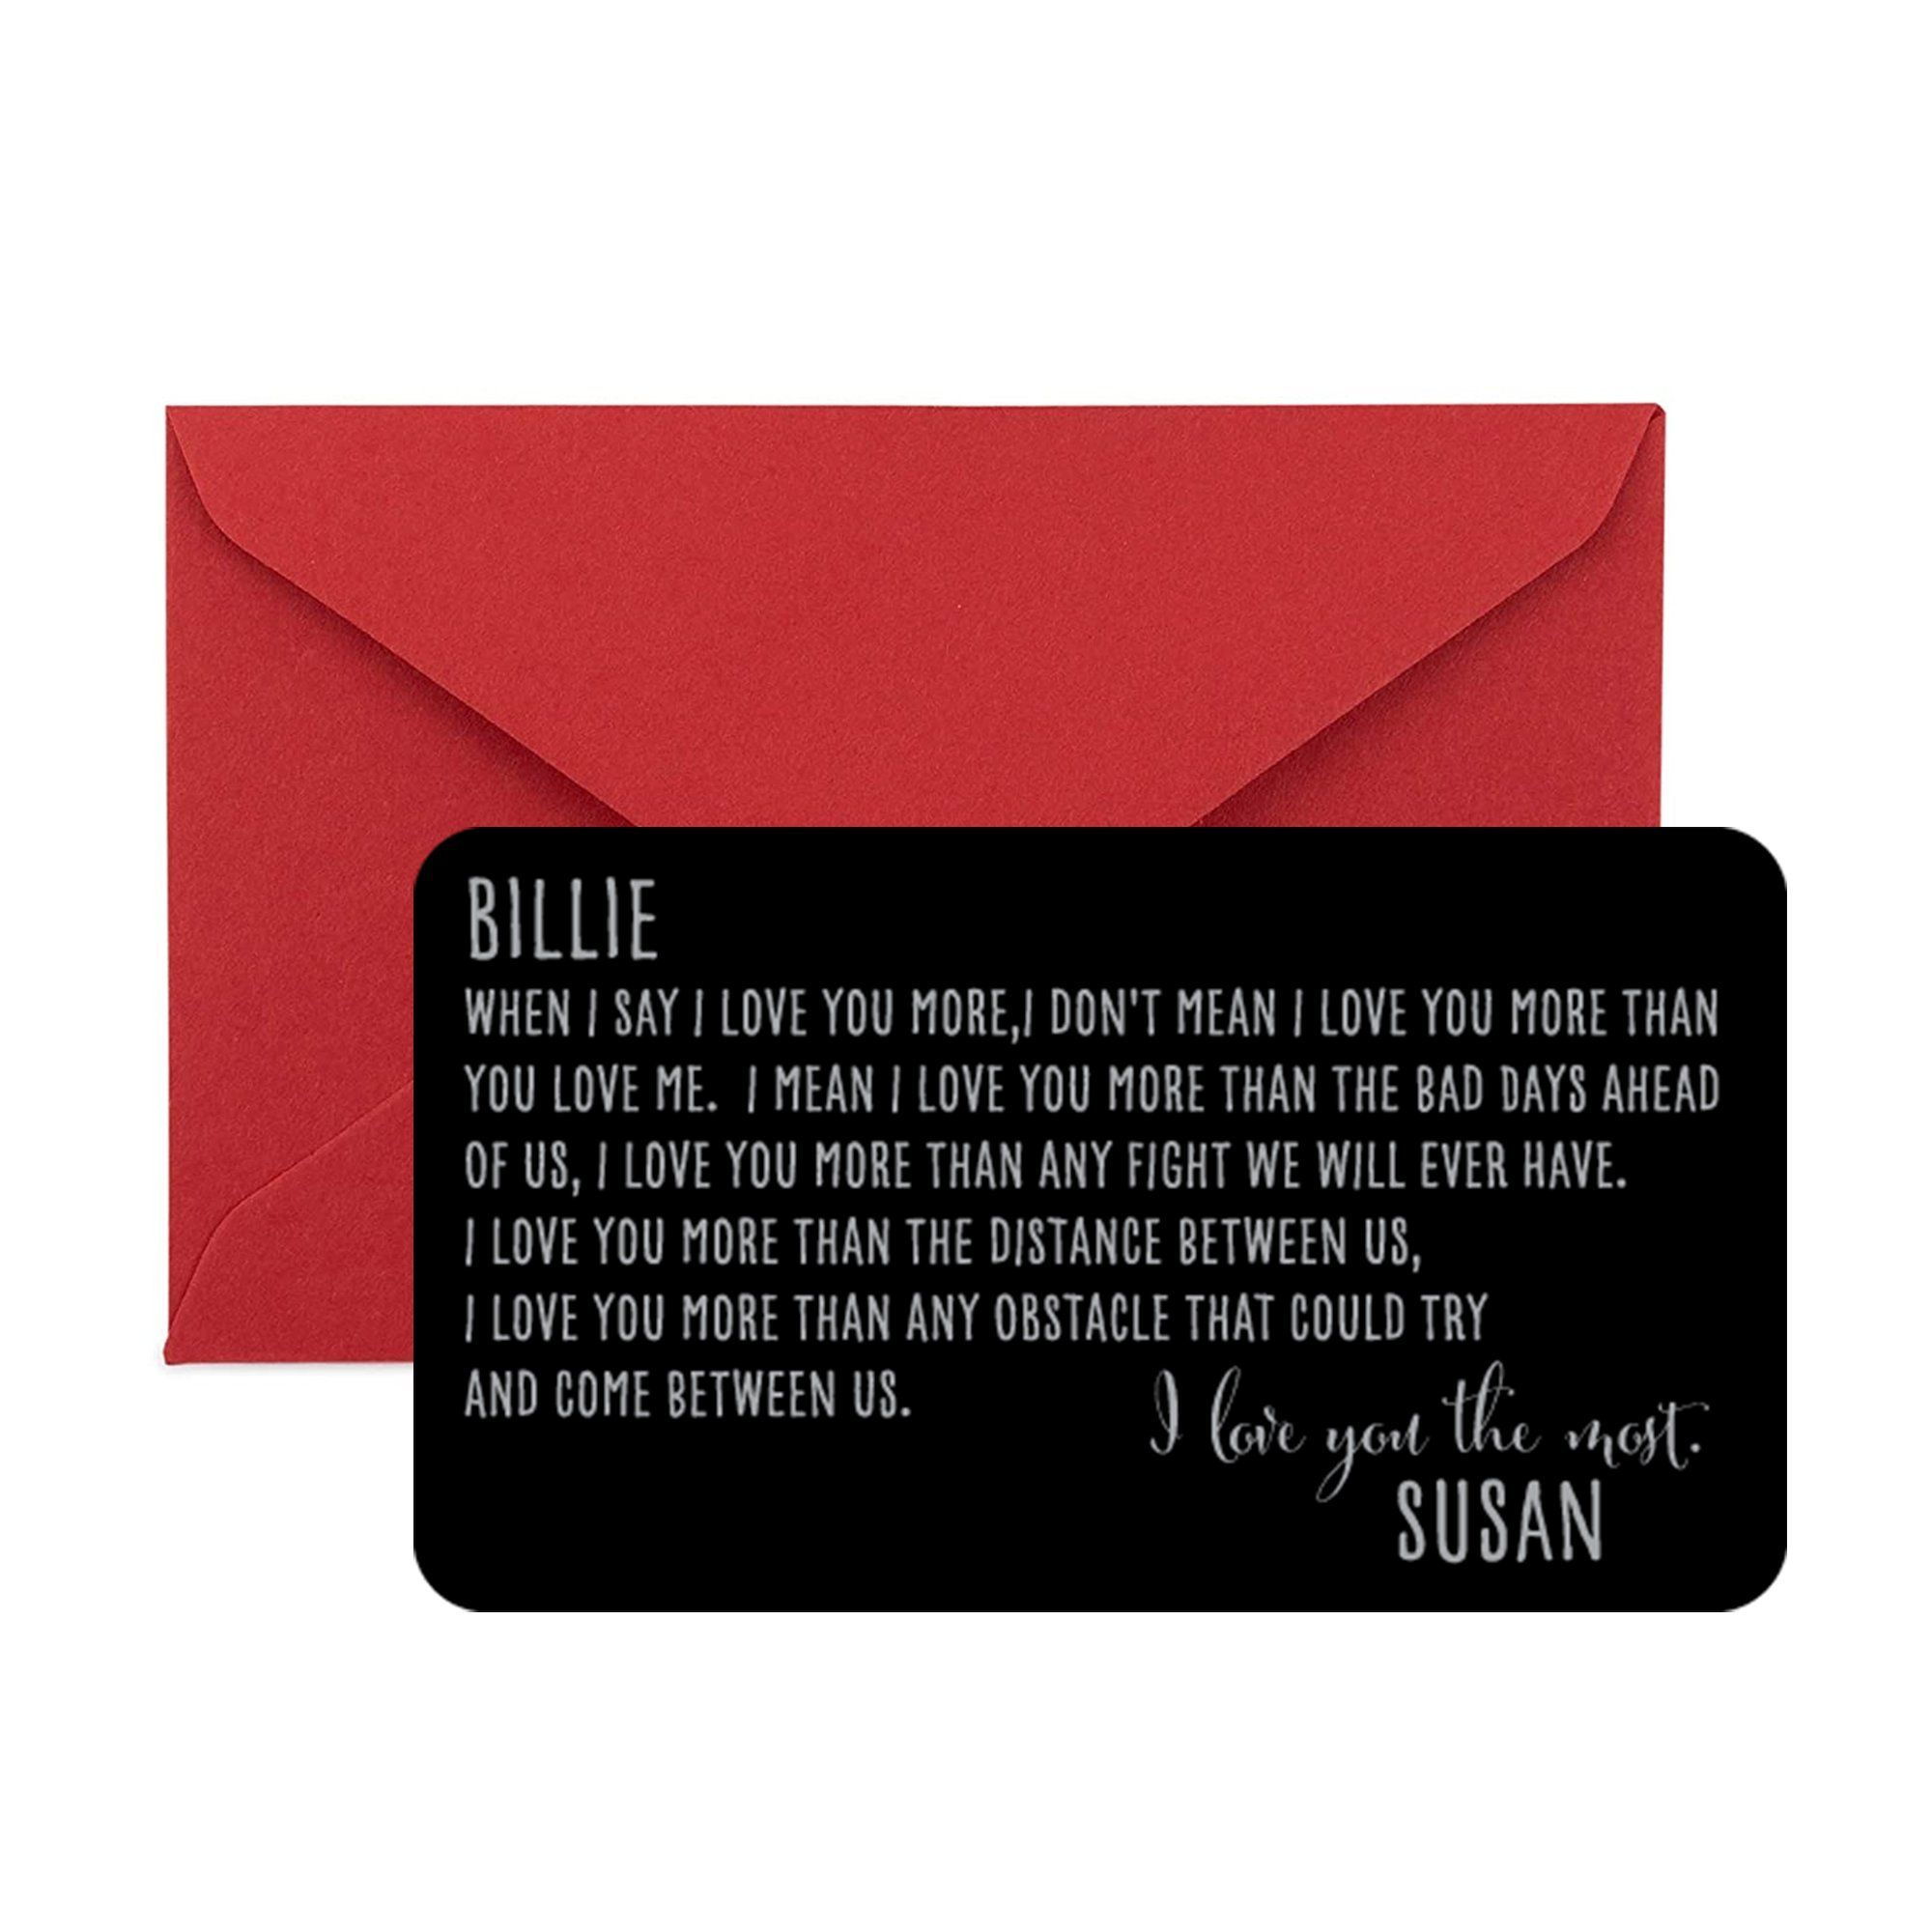 """Engraved Wallet Insert For Men, Boyfriend - Mini Love Message Perfect for Valentine's, Anniversary, Wedding, For the Man I Love MEASUREMENT: Each measure approximately credit card sized (Just 3.5"""" x 2."""" x 0.02""""). Fits Perfectly in Any Wallet!AWESOME QUALITY: This cute wallet insert is made of highest quality anodized aluminum which is sturdy and lightweight. Will not bend!100% MADE IN USA: Metal Made and Laser Engraving done in the USAGIFT READY: Packaged in a sexy red envelope ready for your bo"""